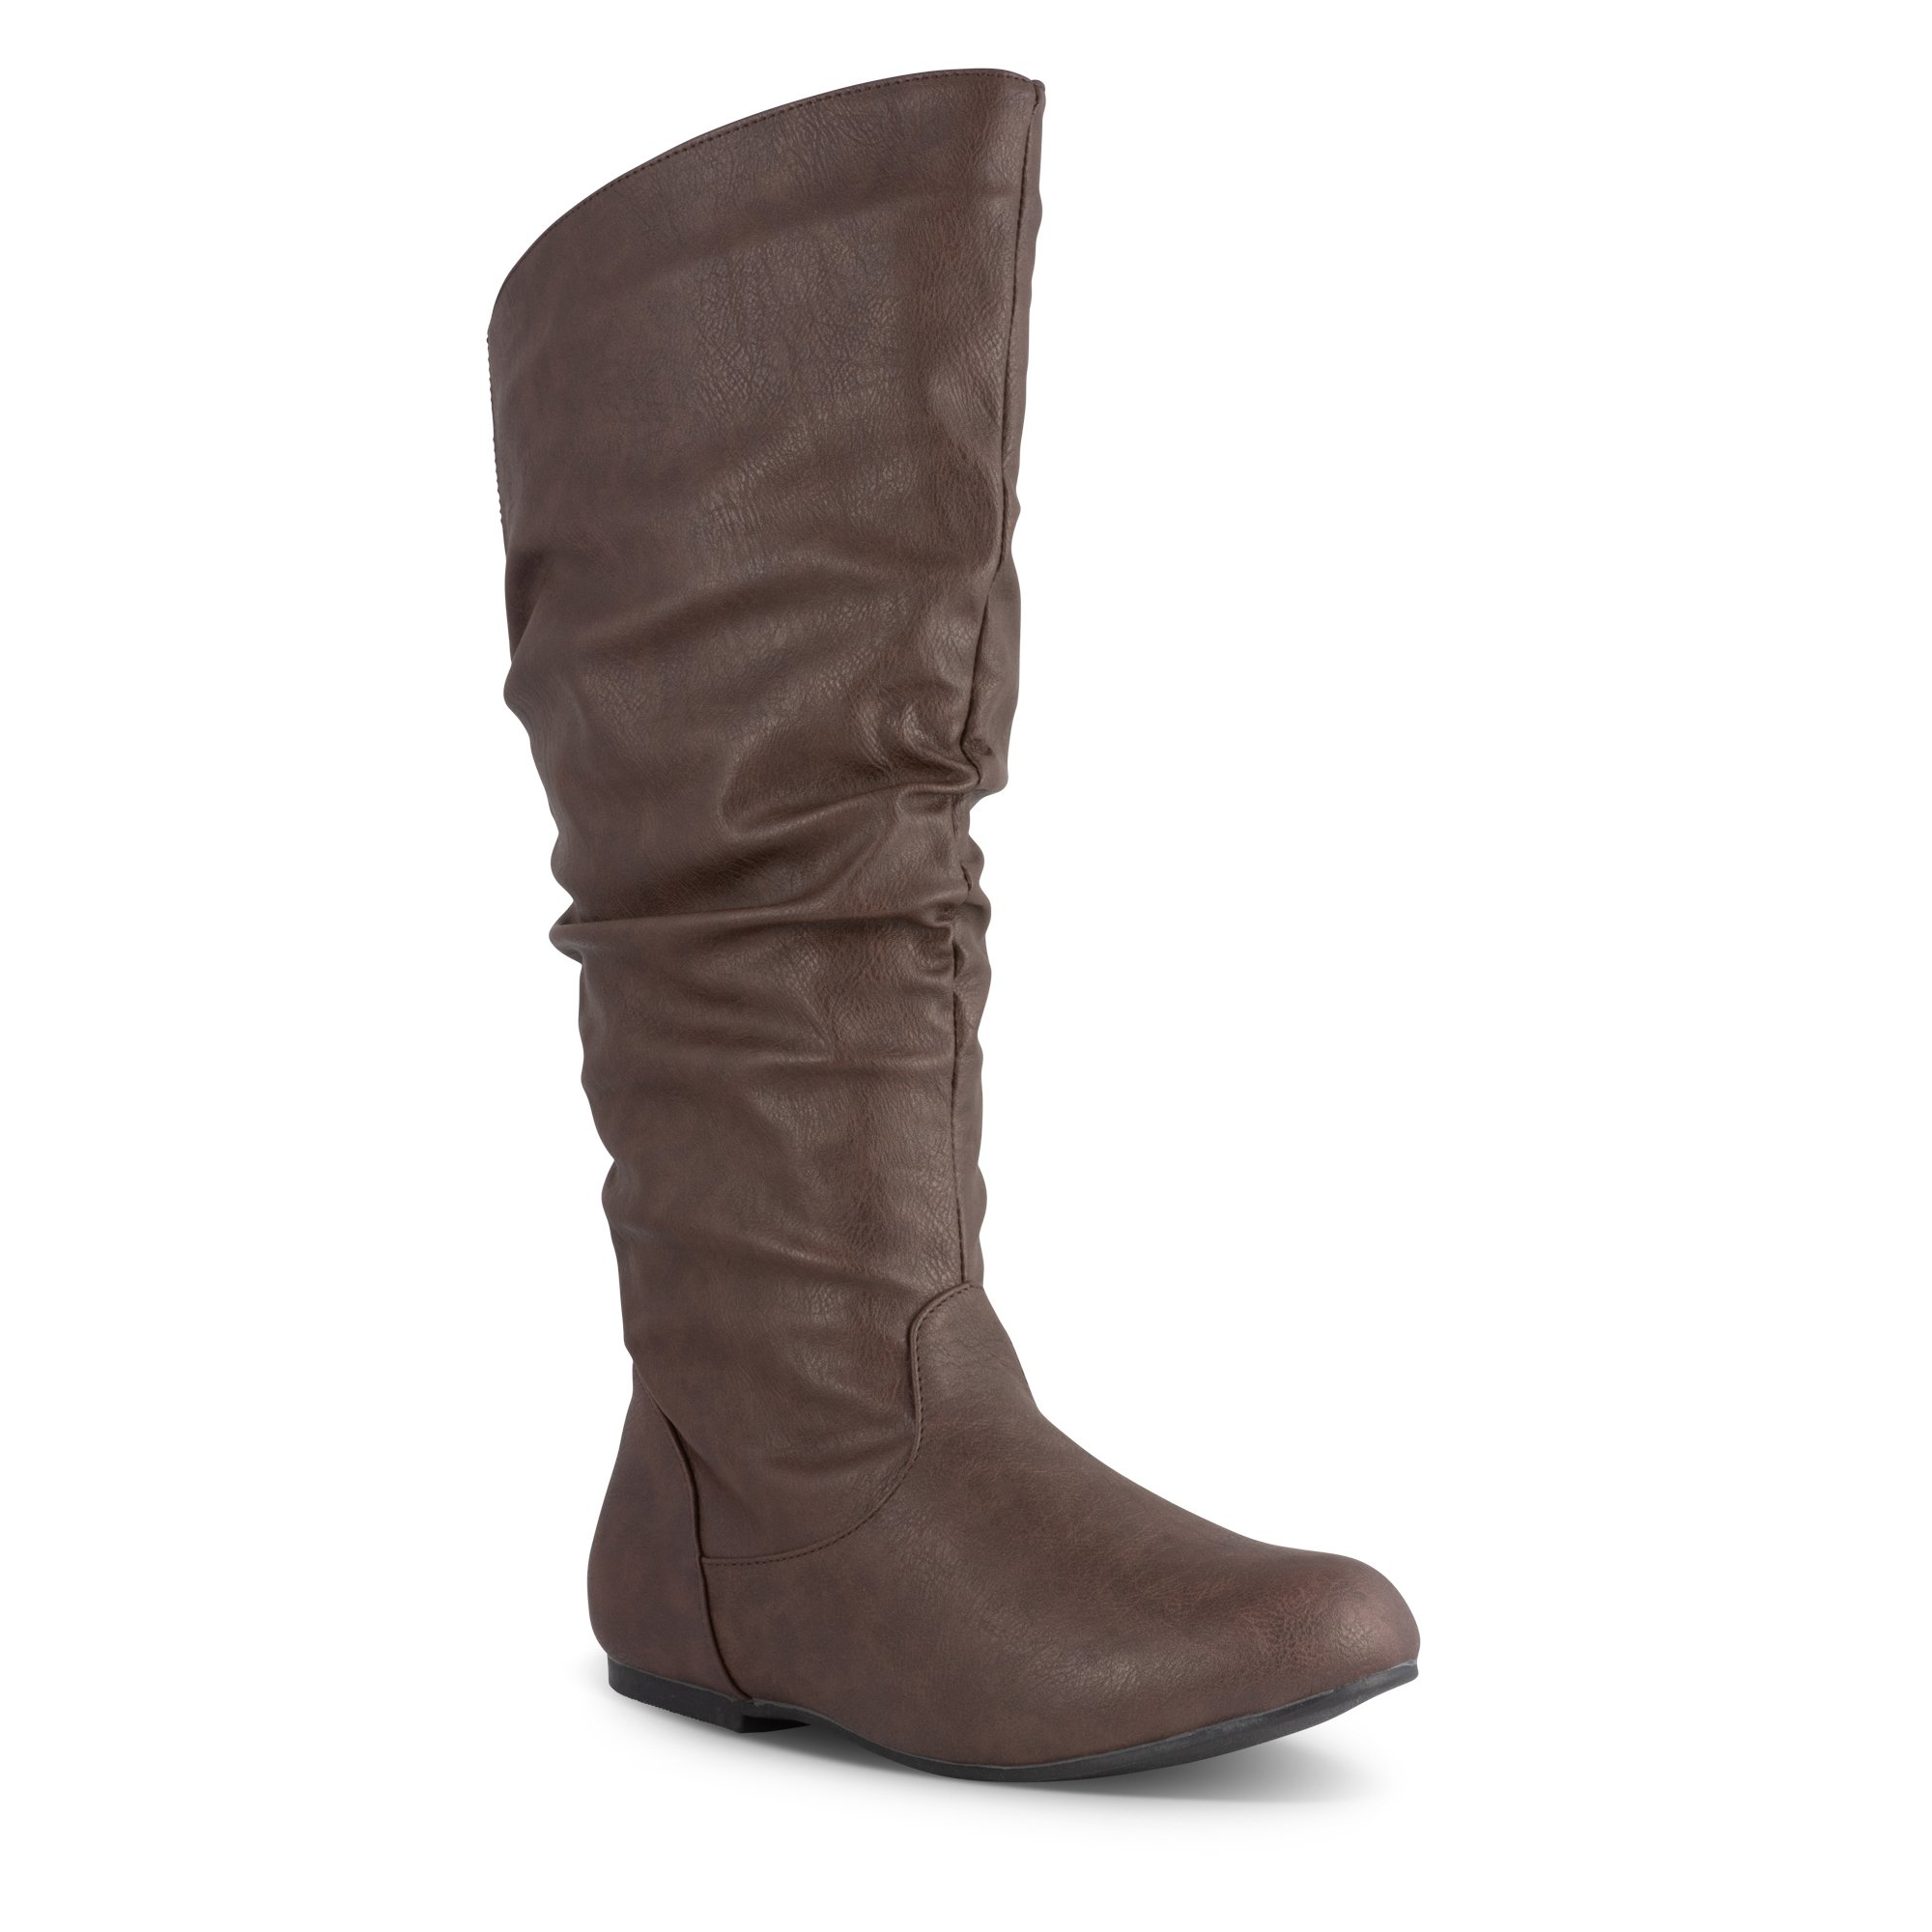 Twisted Women's SHELLY Wide Width/Wide Calf Faux Leather Knee-High Scrunch Flat Riding Boot - SHELLY139P BROWN, Size 9